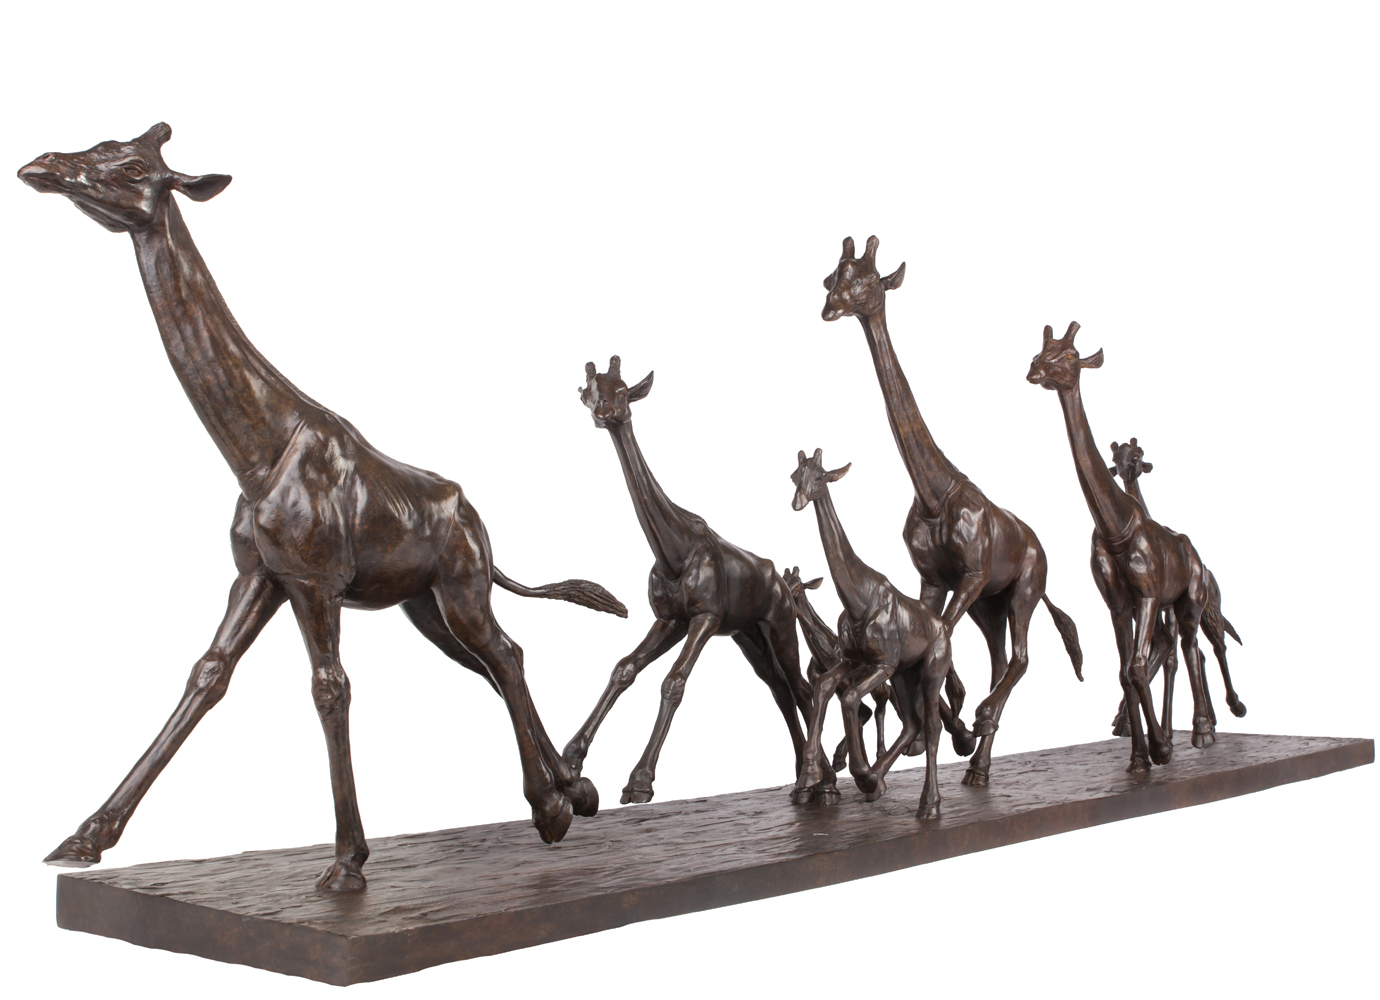 Sculpture bronze Colcombet groupe de girafes au galop